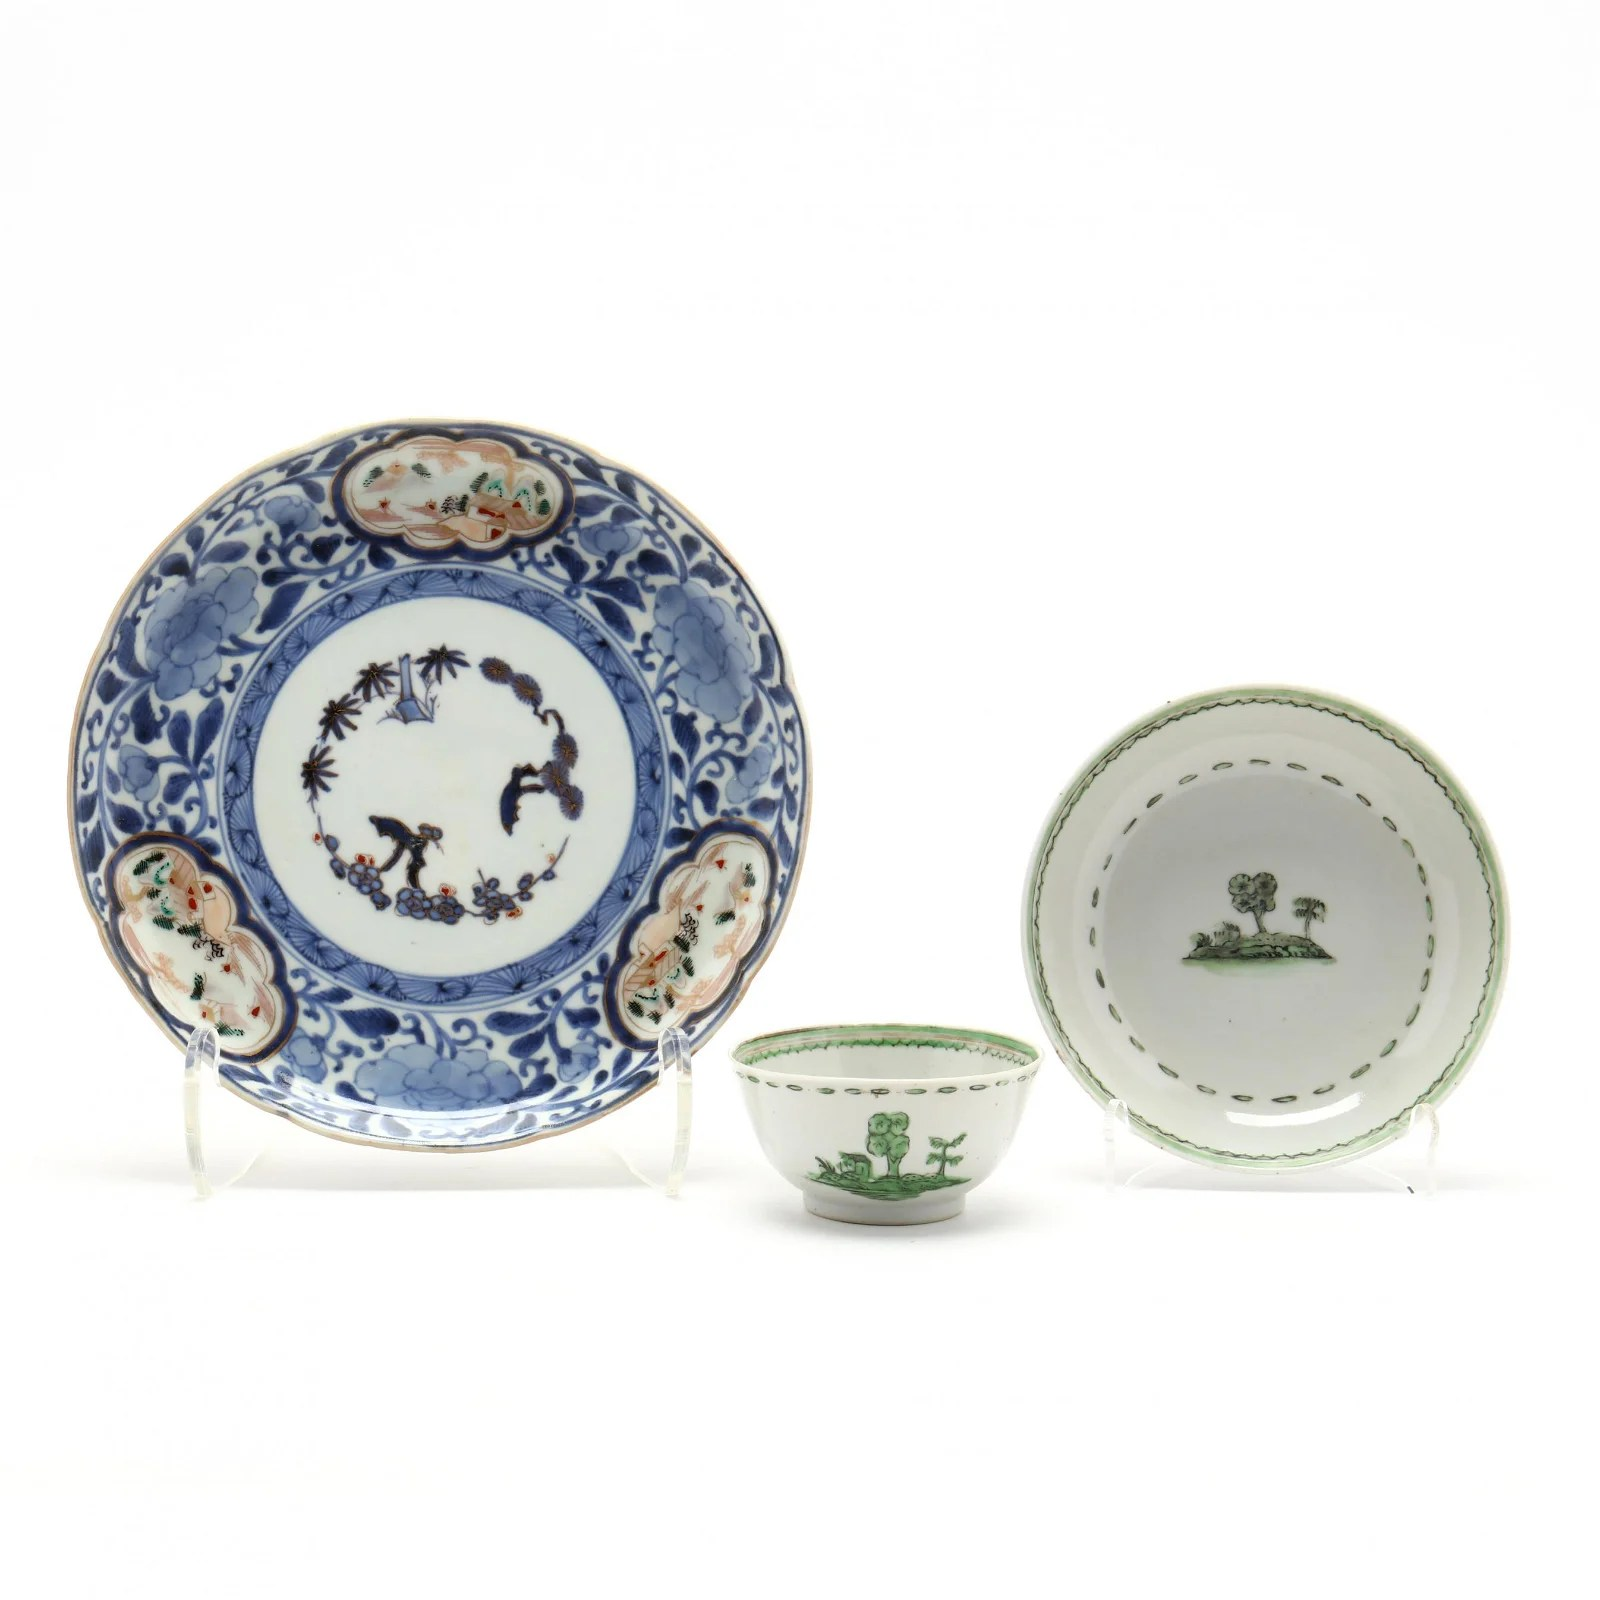 A Japanese Imari Plate and Chinese Export Teacup and